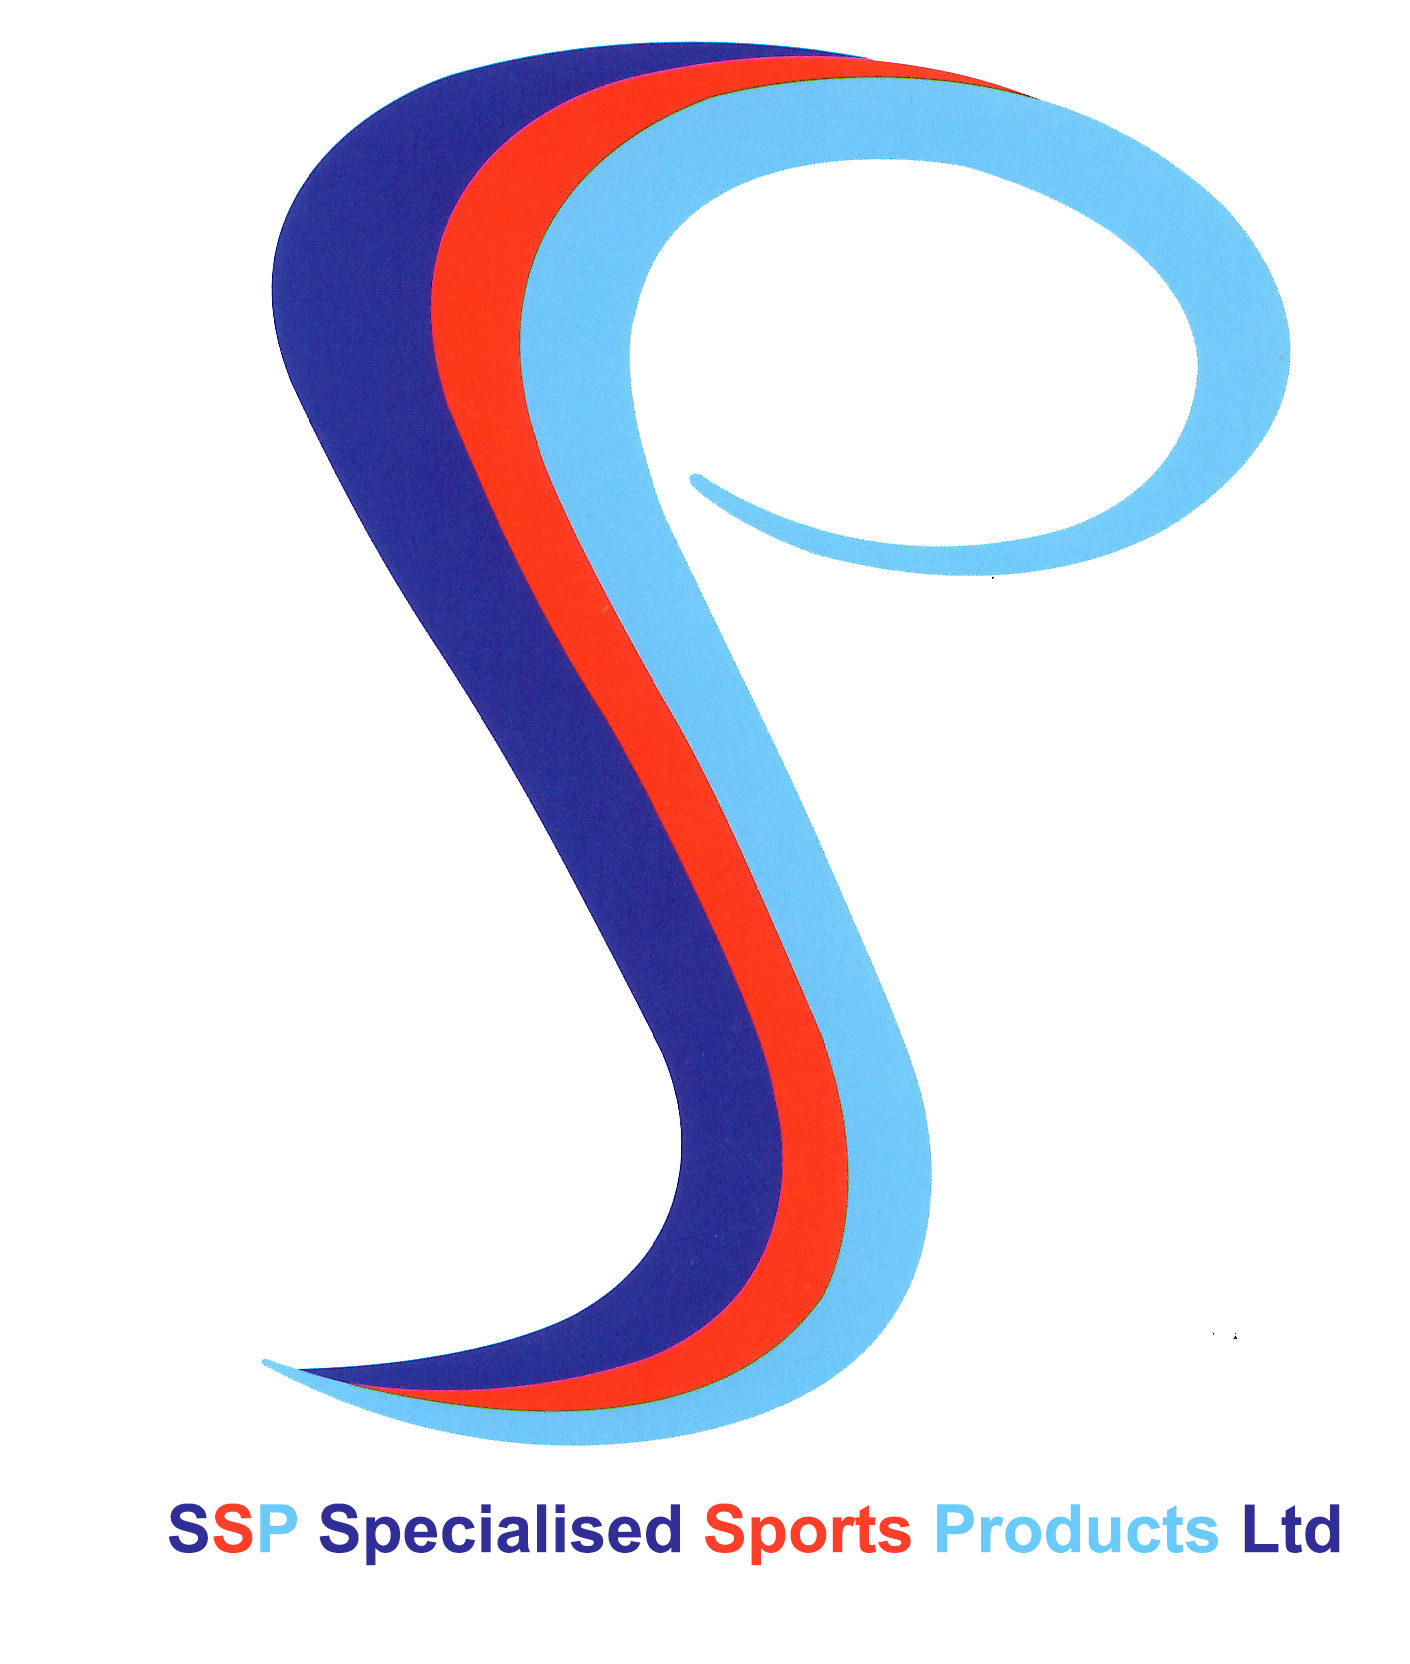 Specialised Sports Products Ltd